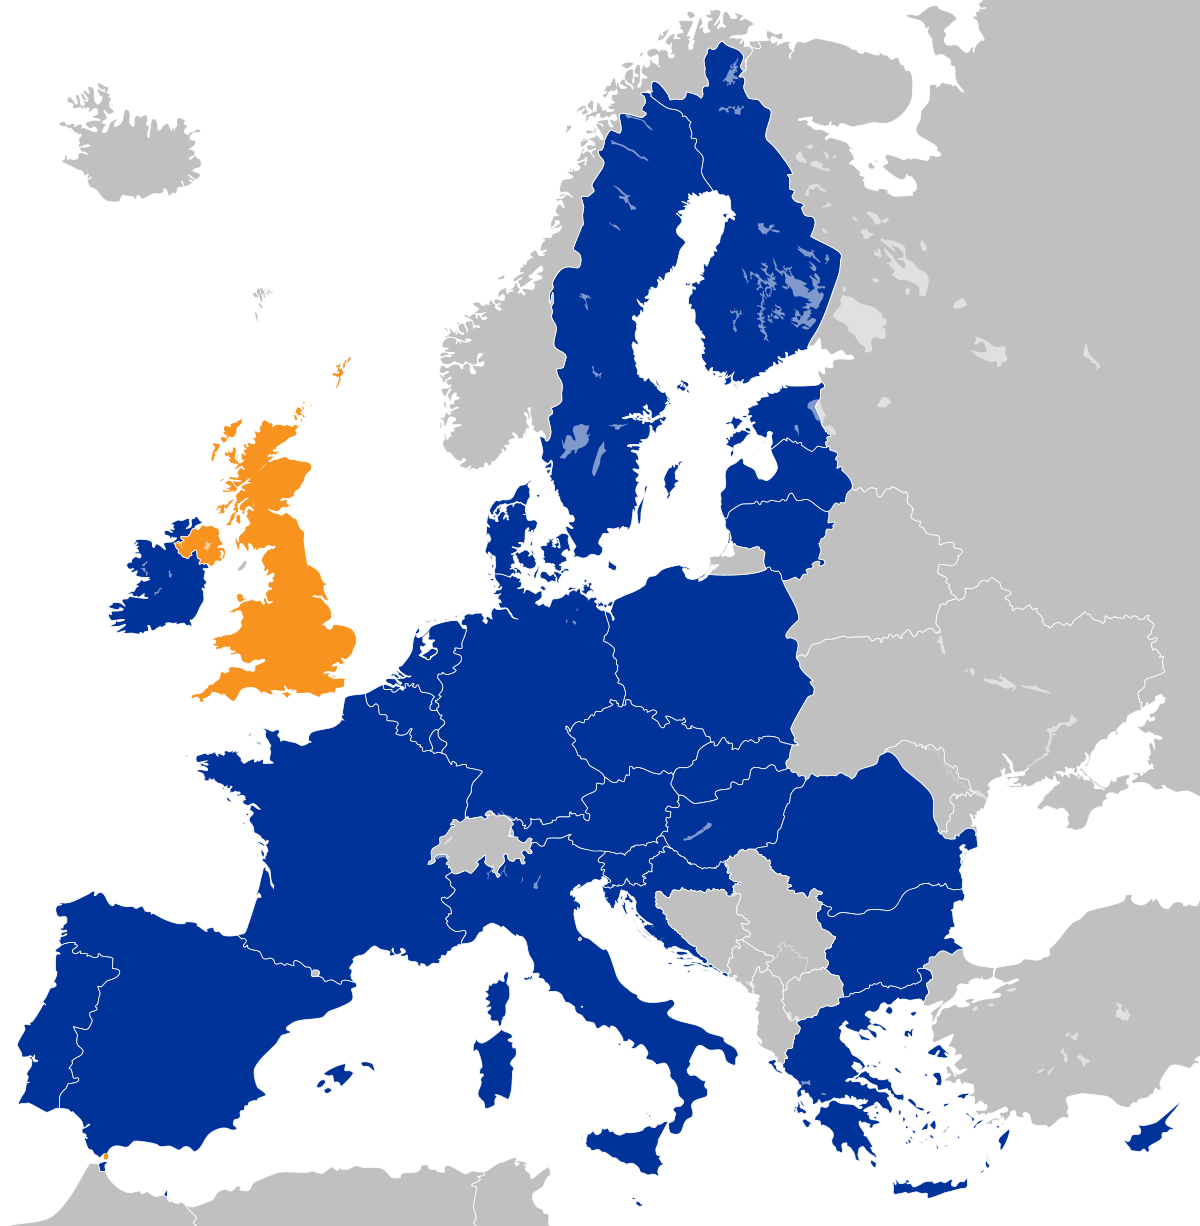 EU and UK map (Brexit)